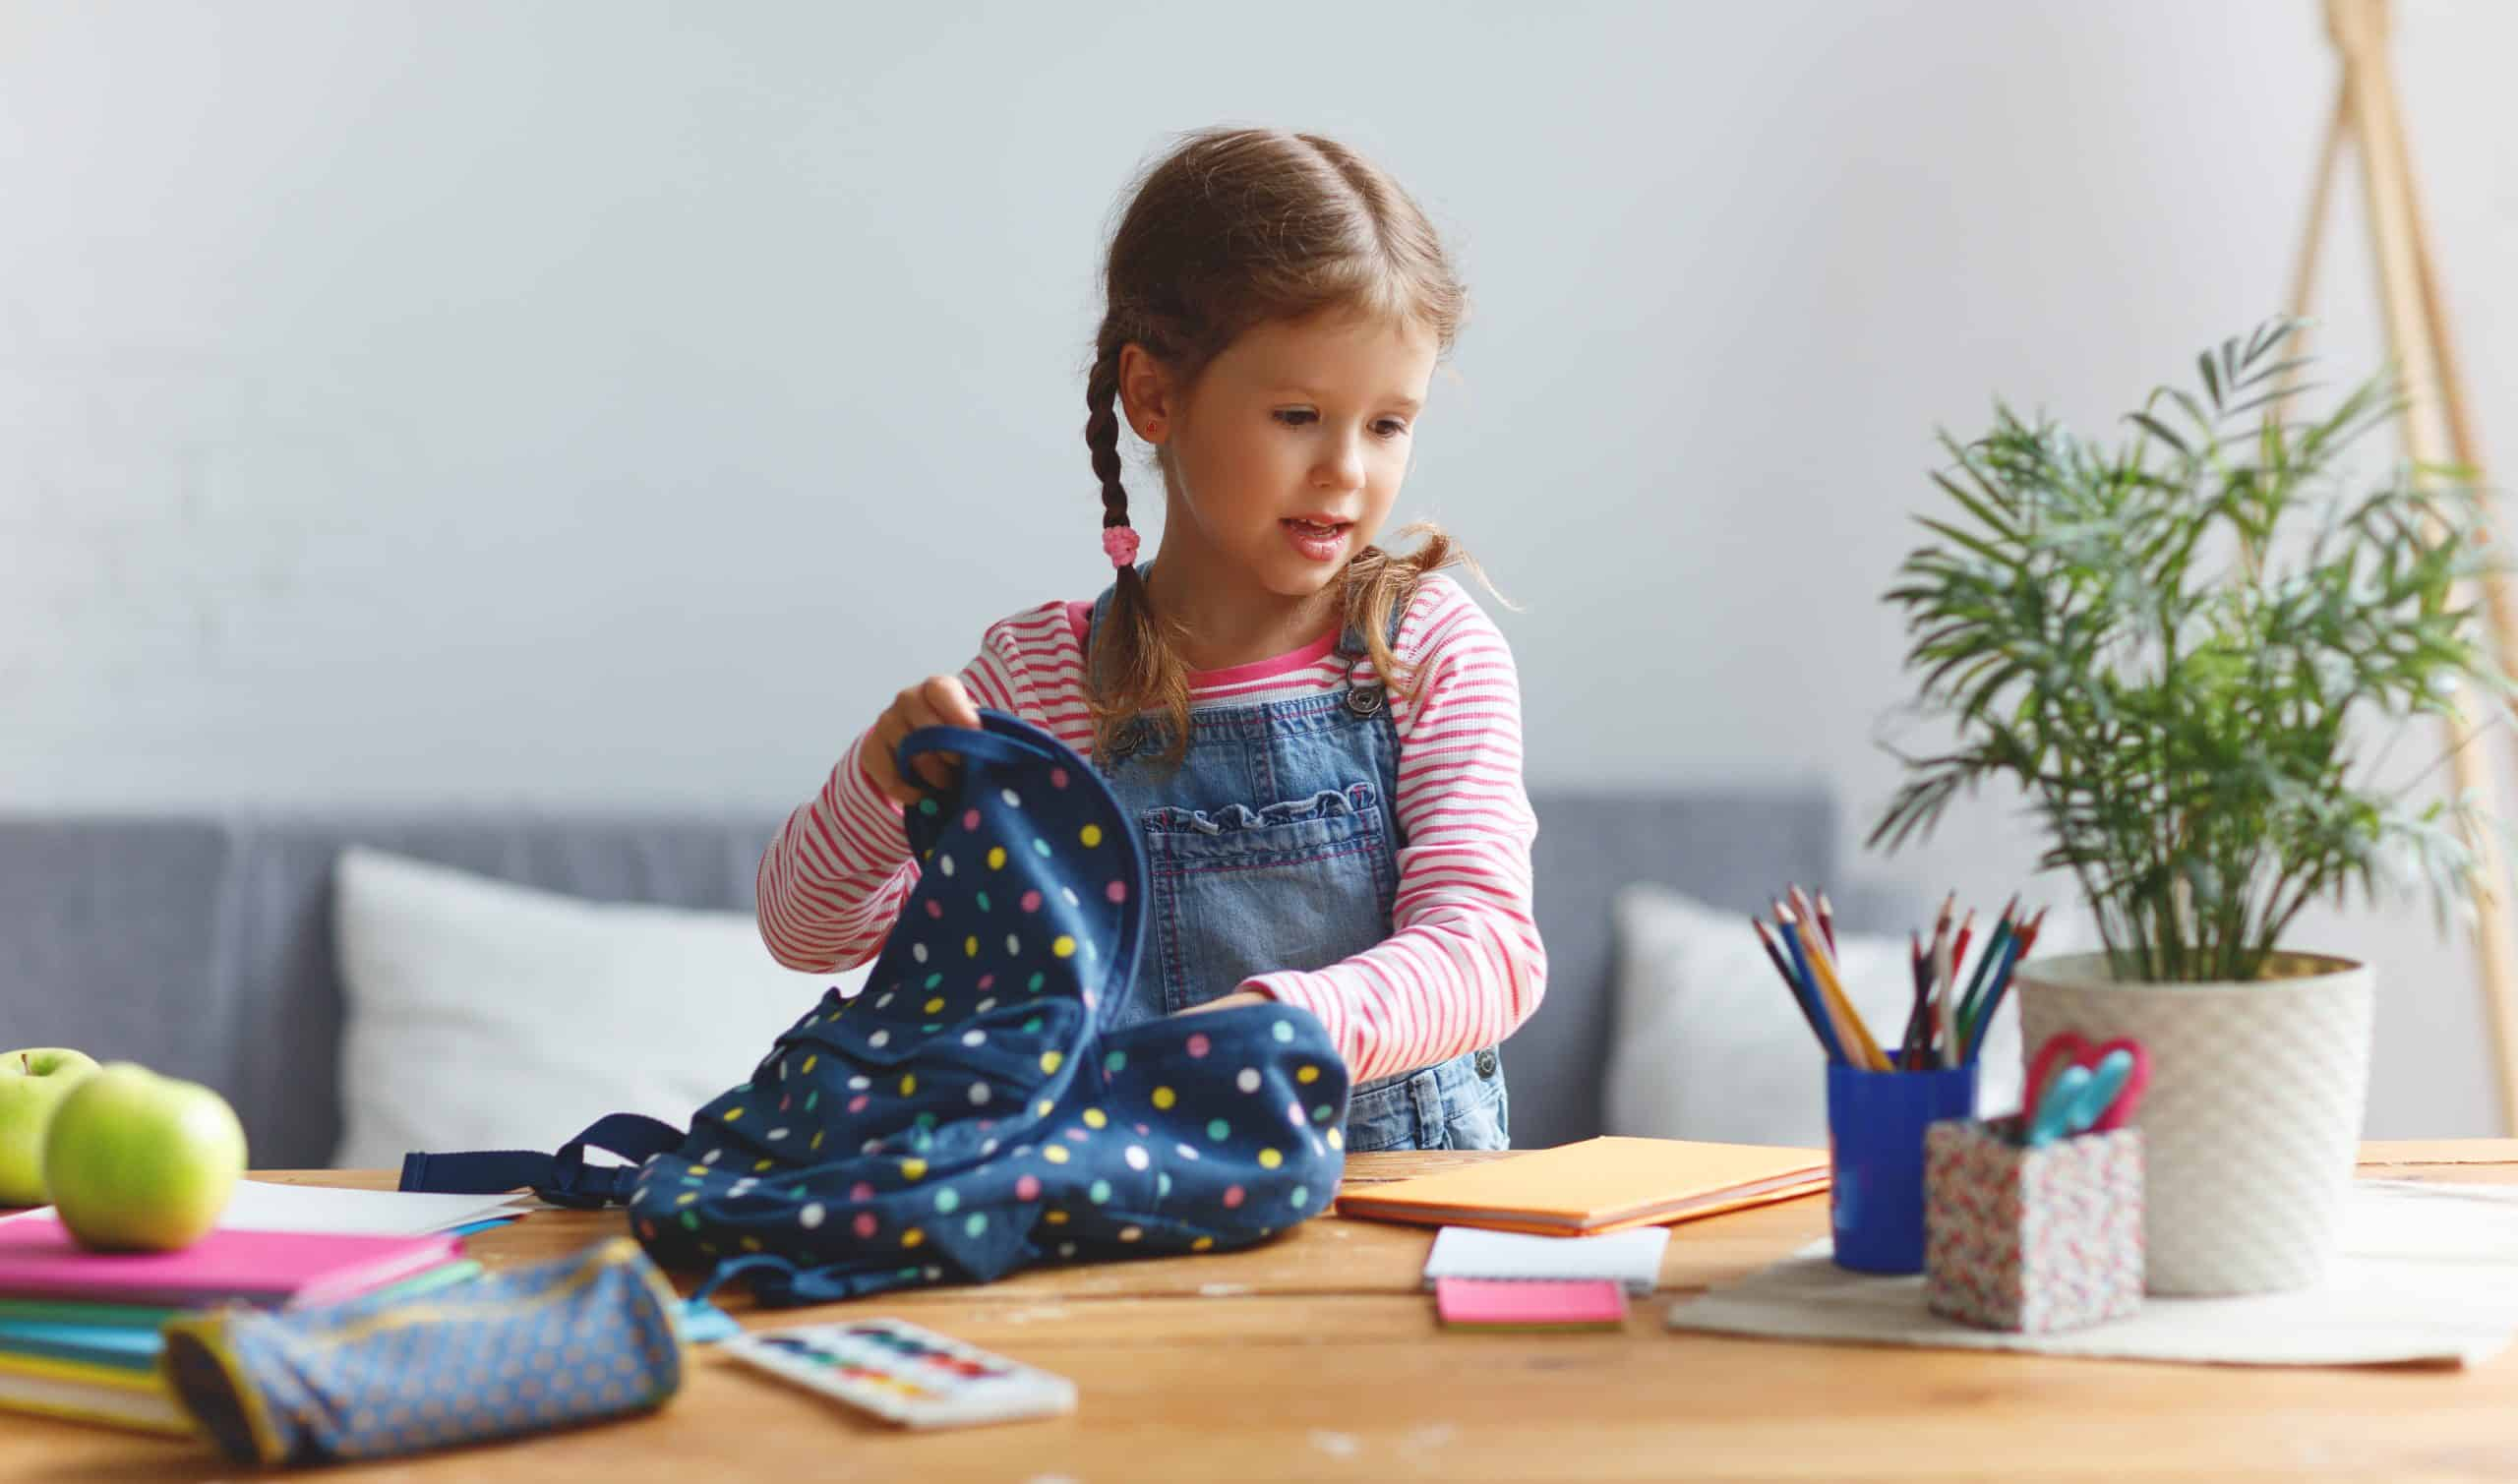 Things To Consider While Choosing School Backpack For Kids